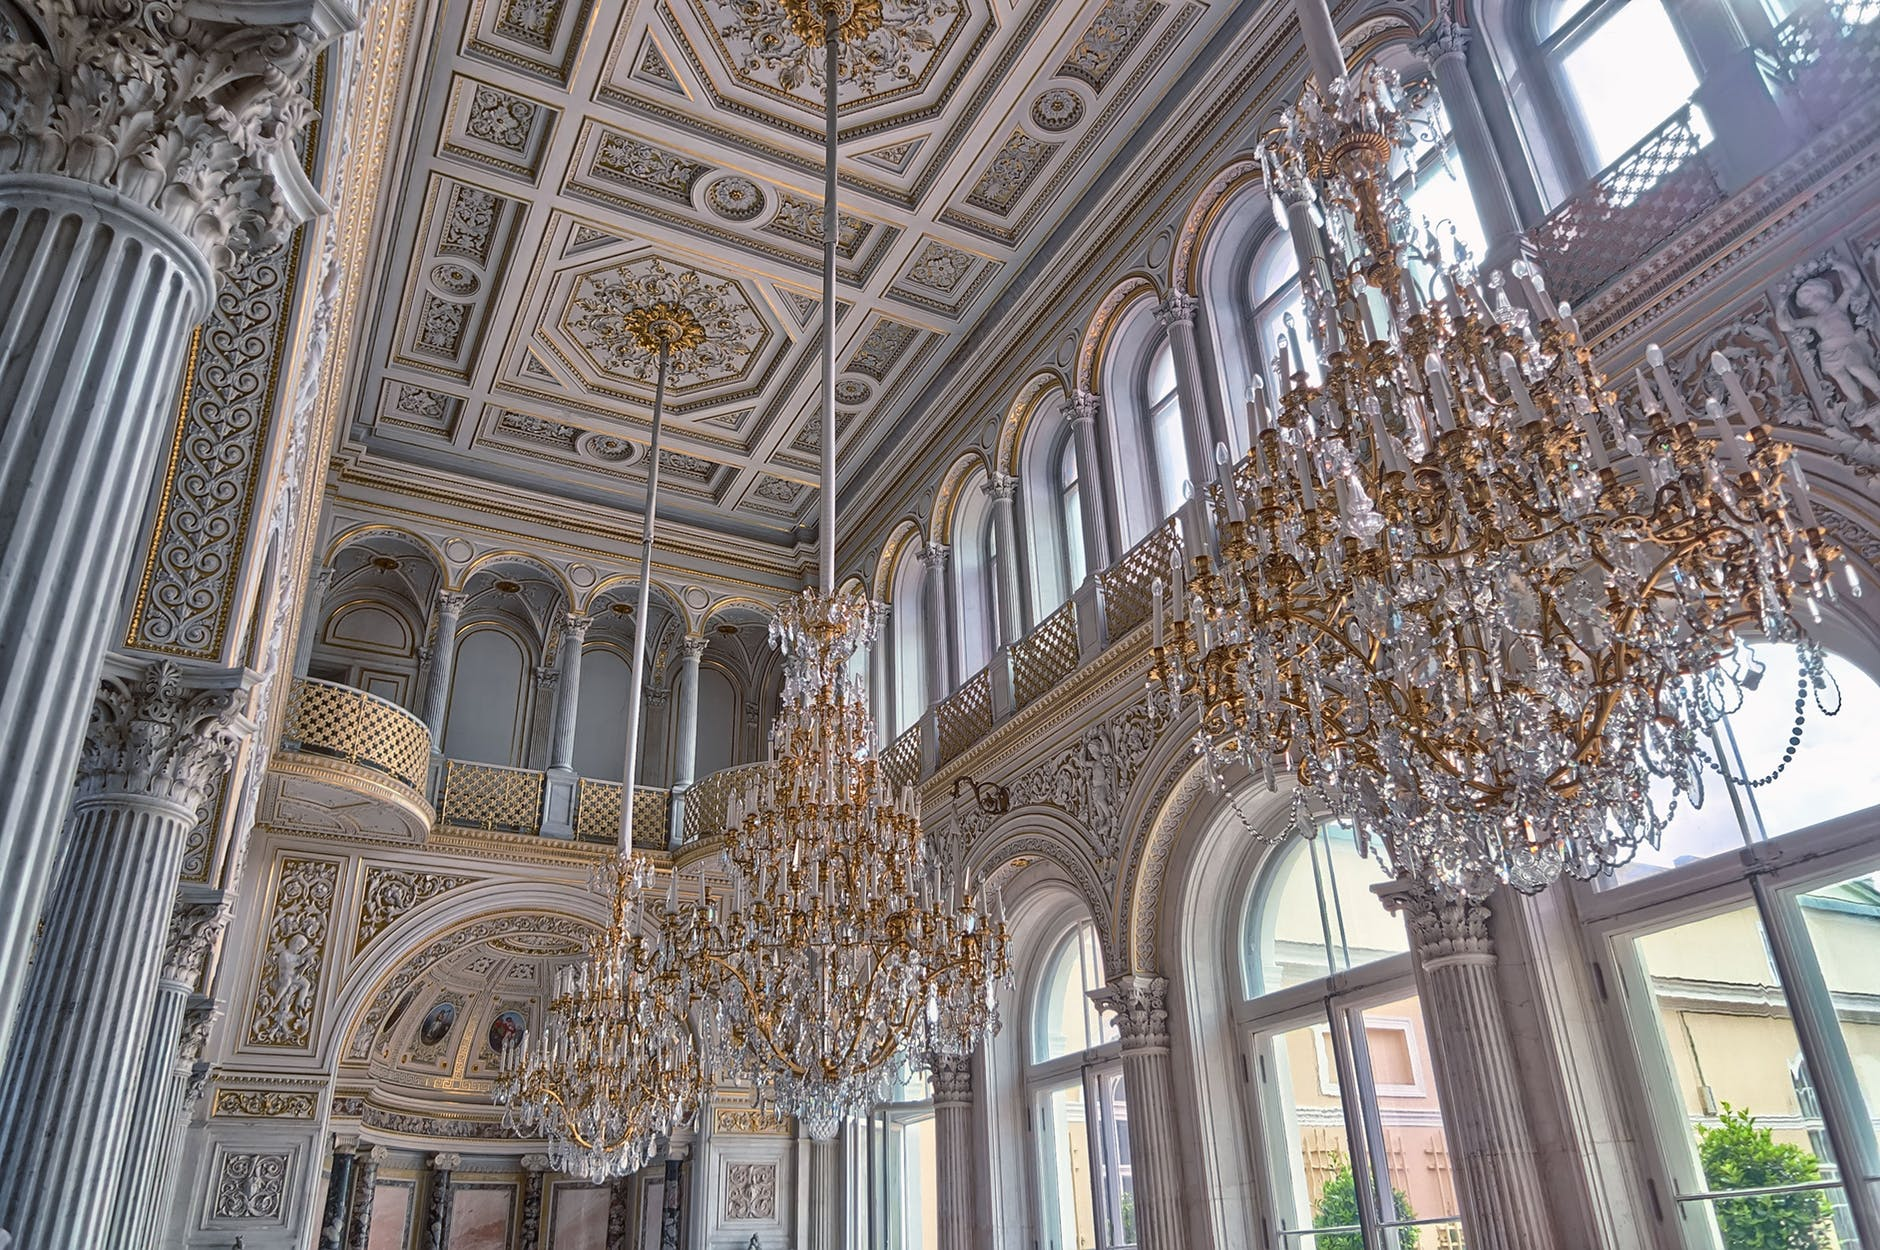 The spectacular Pavilion Hall at the Hermitage in St. Petersburg… I've never been here, but it is a gorgeous picture of neutral gray finishes with gold accents…and it is in a METROPOLITAN area?!